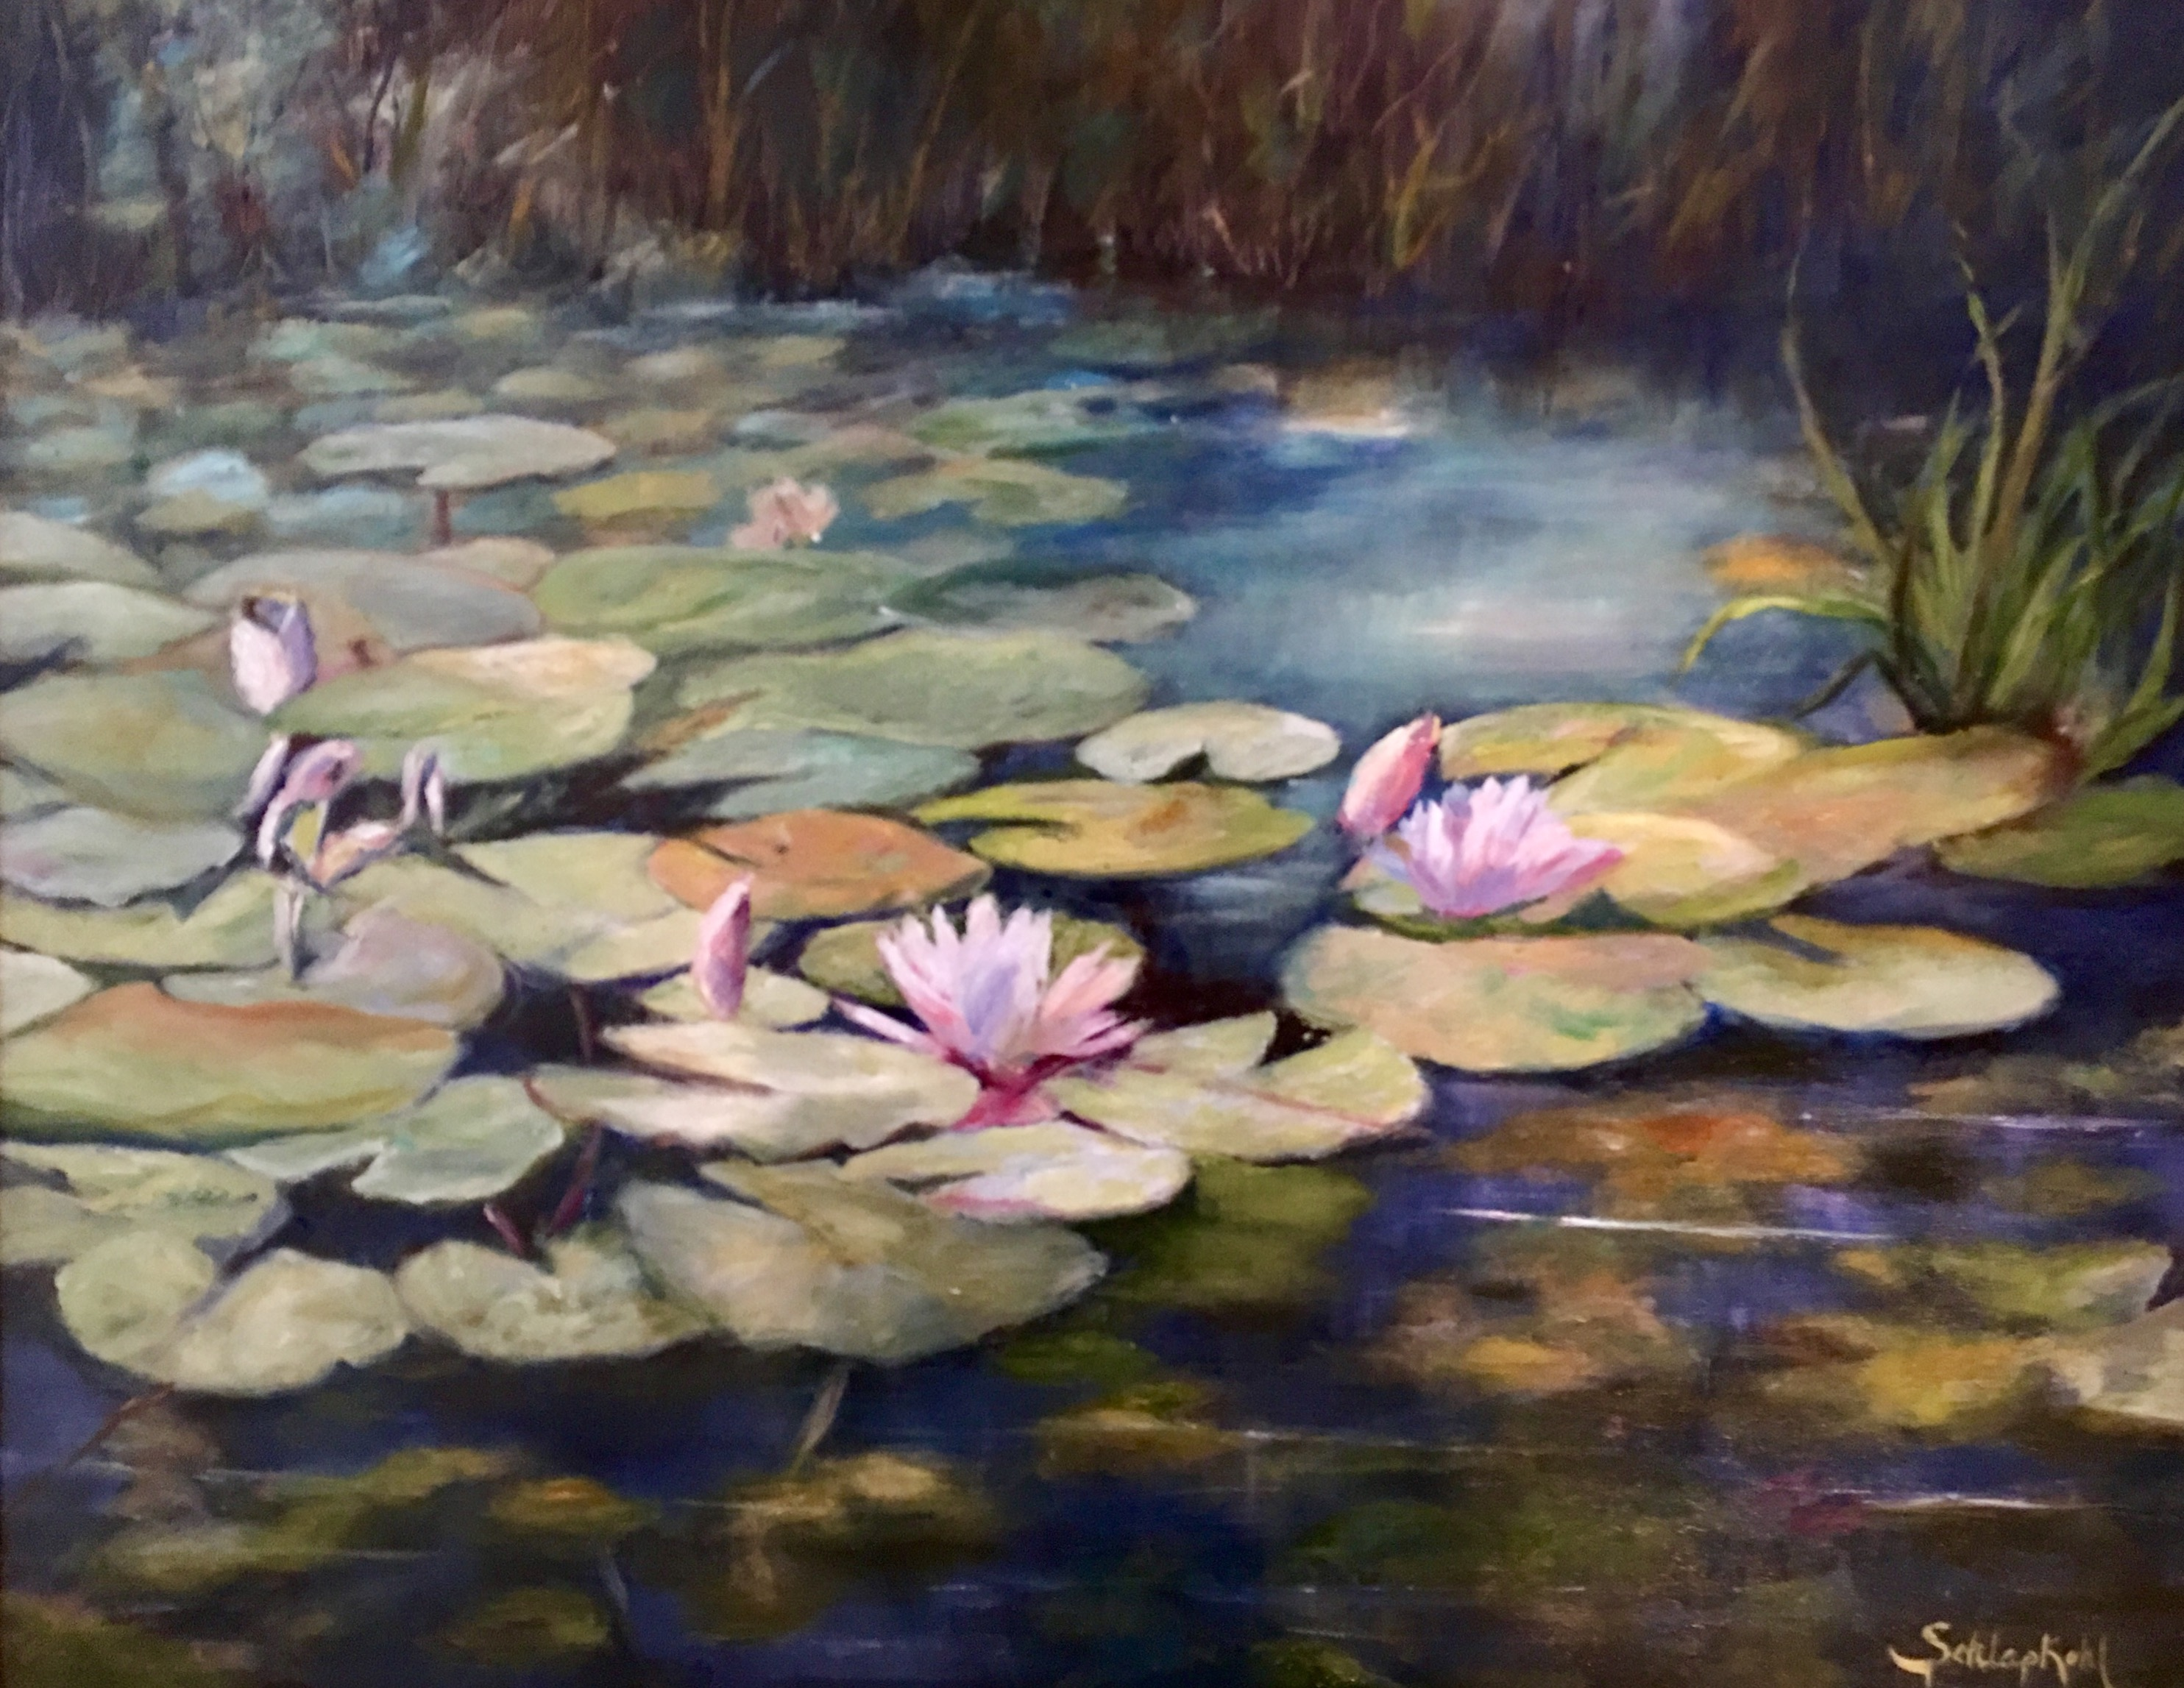 Schlapkohl-Monet Waterlily Inspiration_e